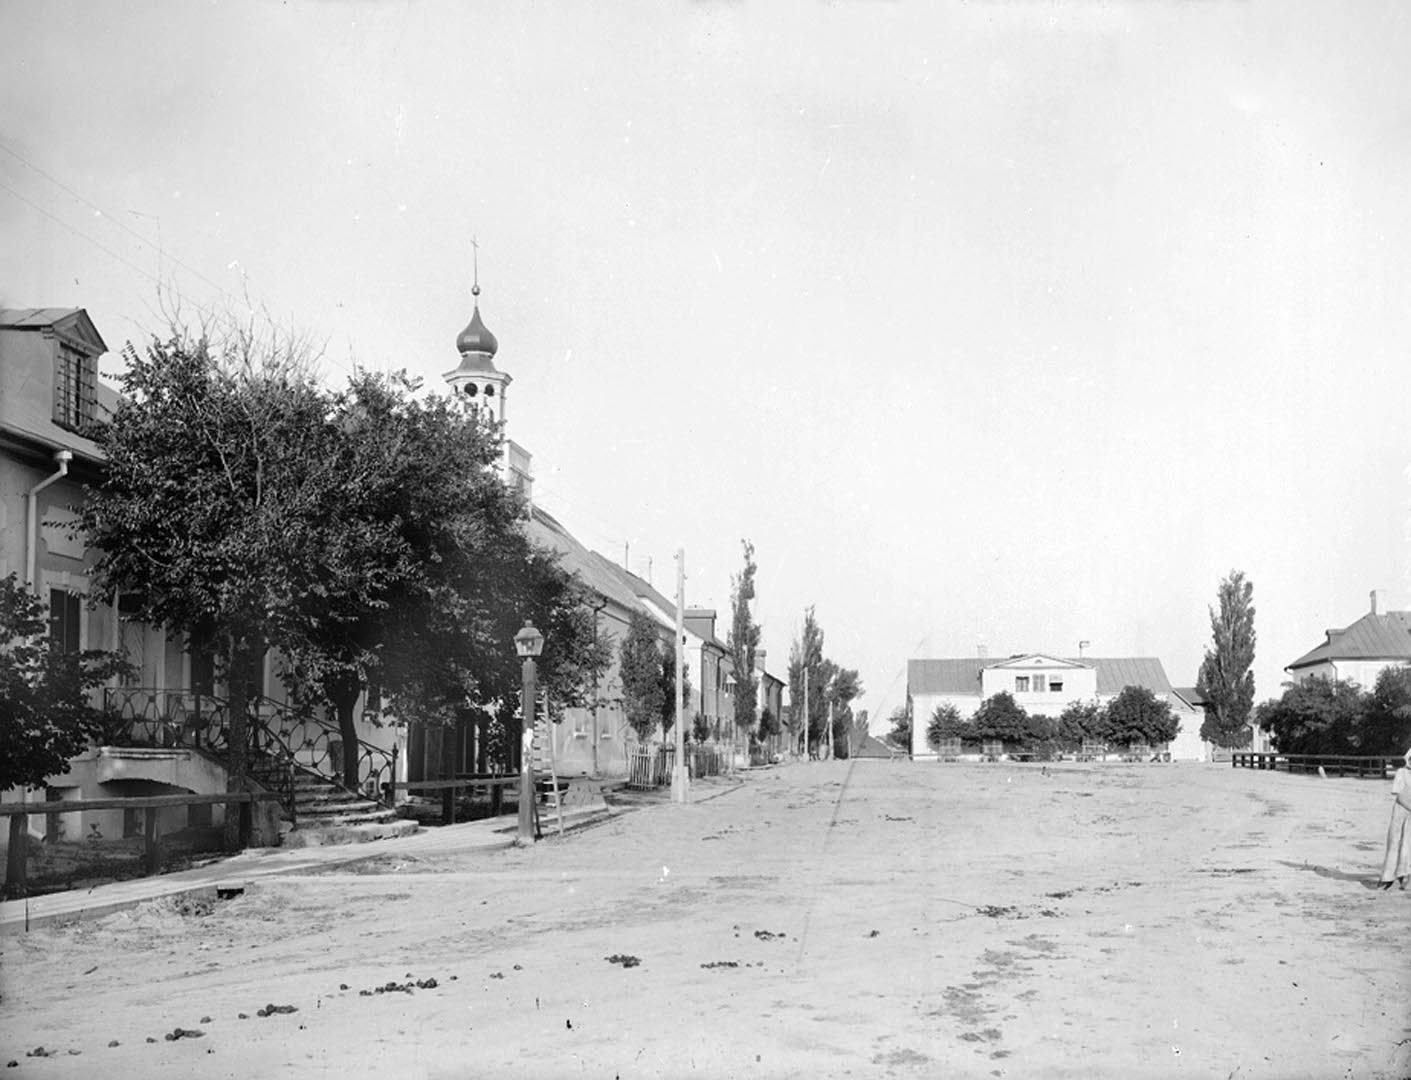 Sarepta street scenes in 1894. Source: Wikimedia Commons.